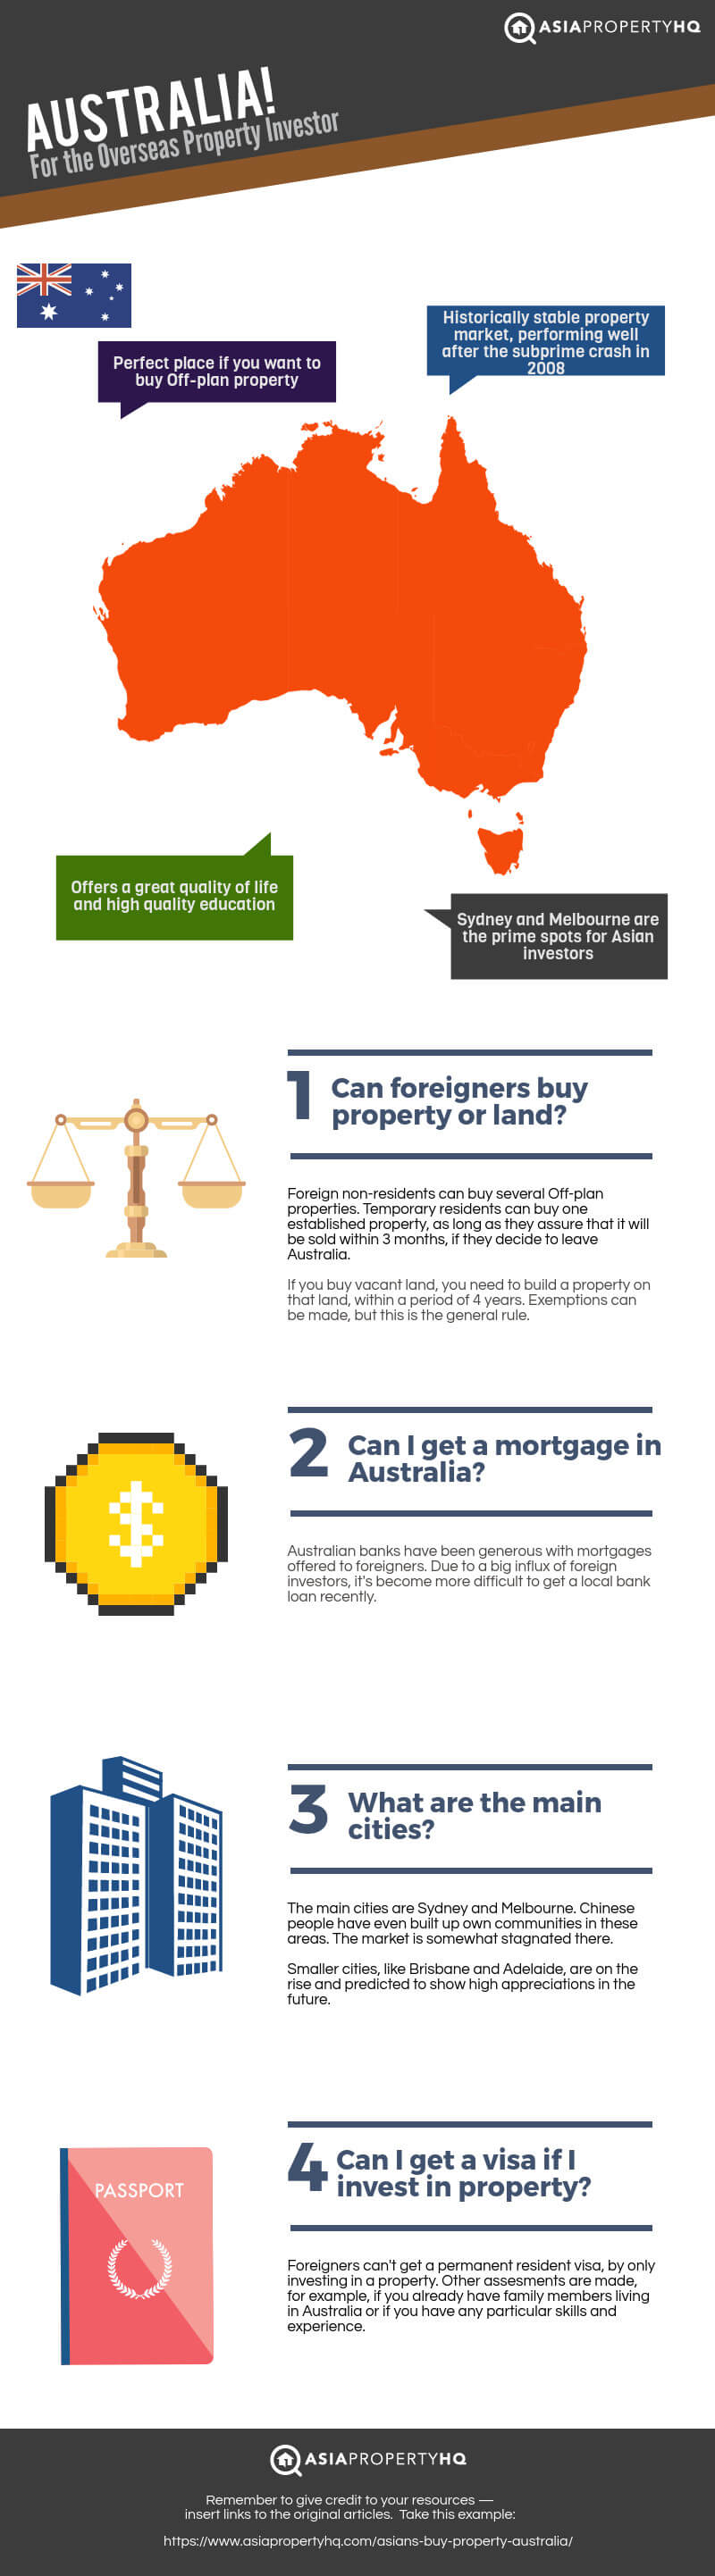 Buy Property in Australia Infographic